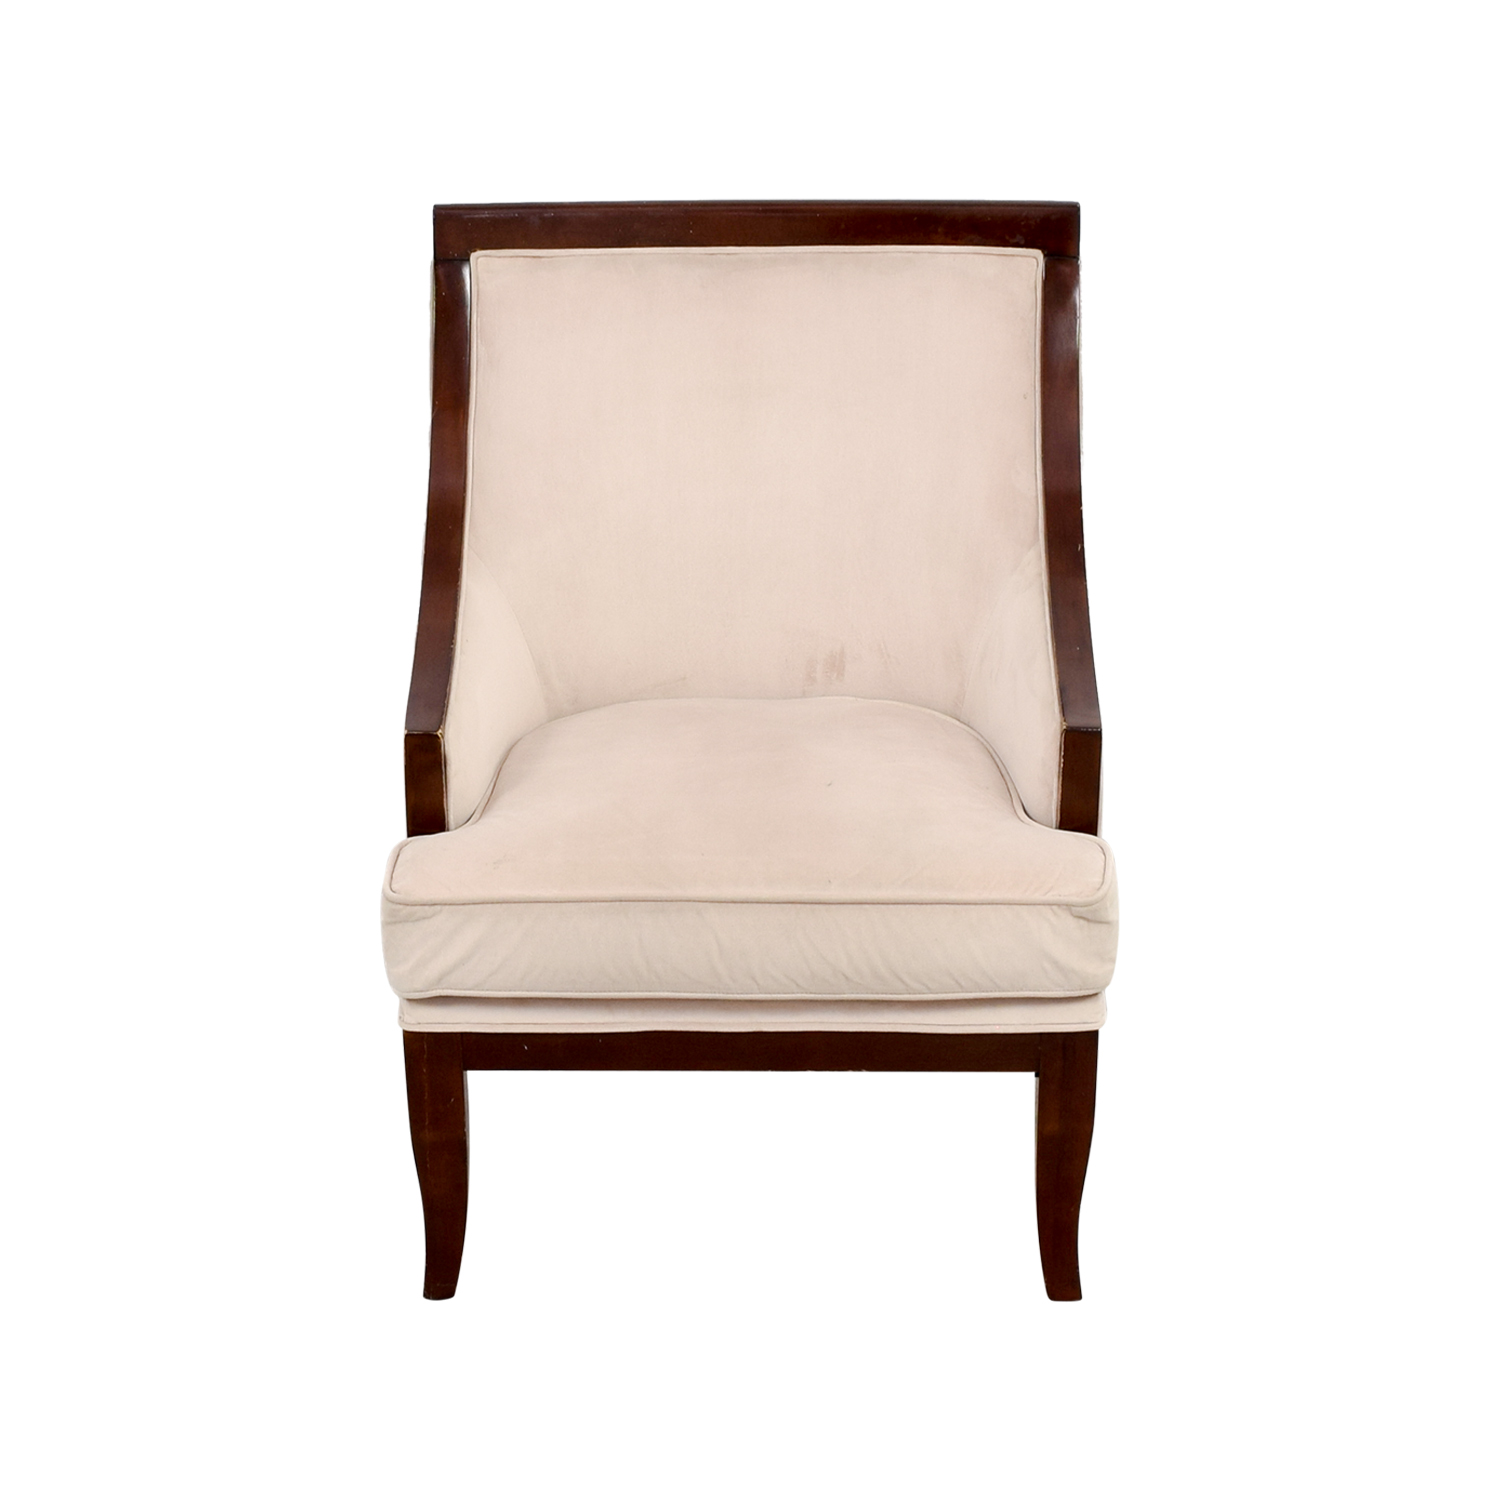 cream accent chair 90 armed accent chair chairs 13574 | cream armed accent chair second hand